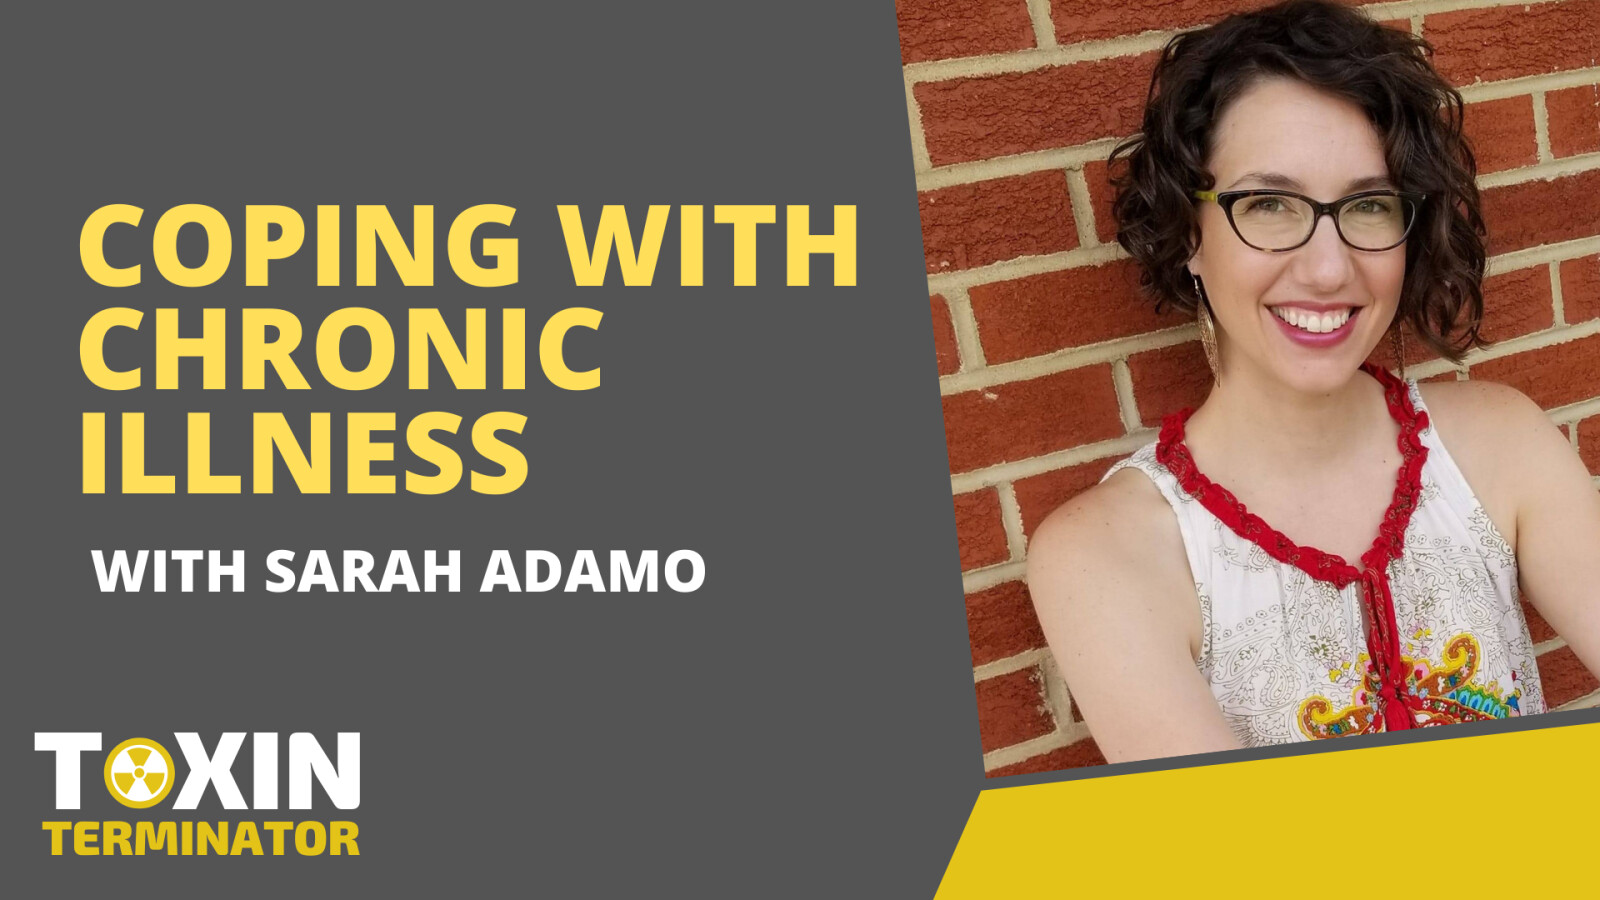 Coping with Chronic Illness with Sarah Adamo